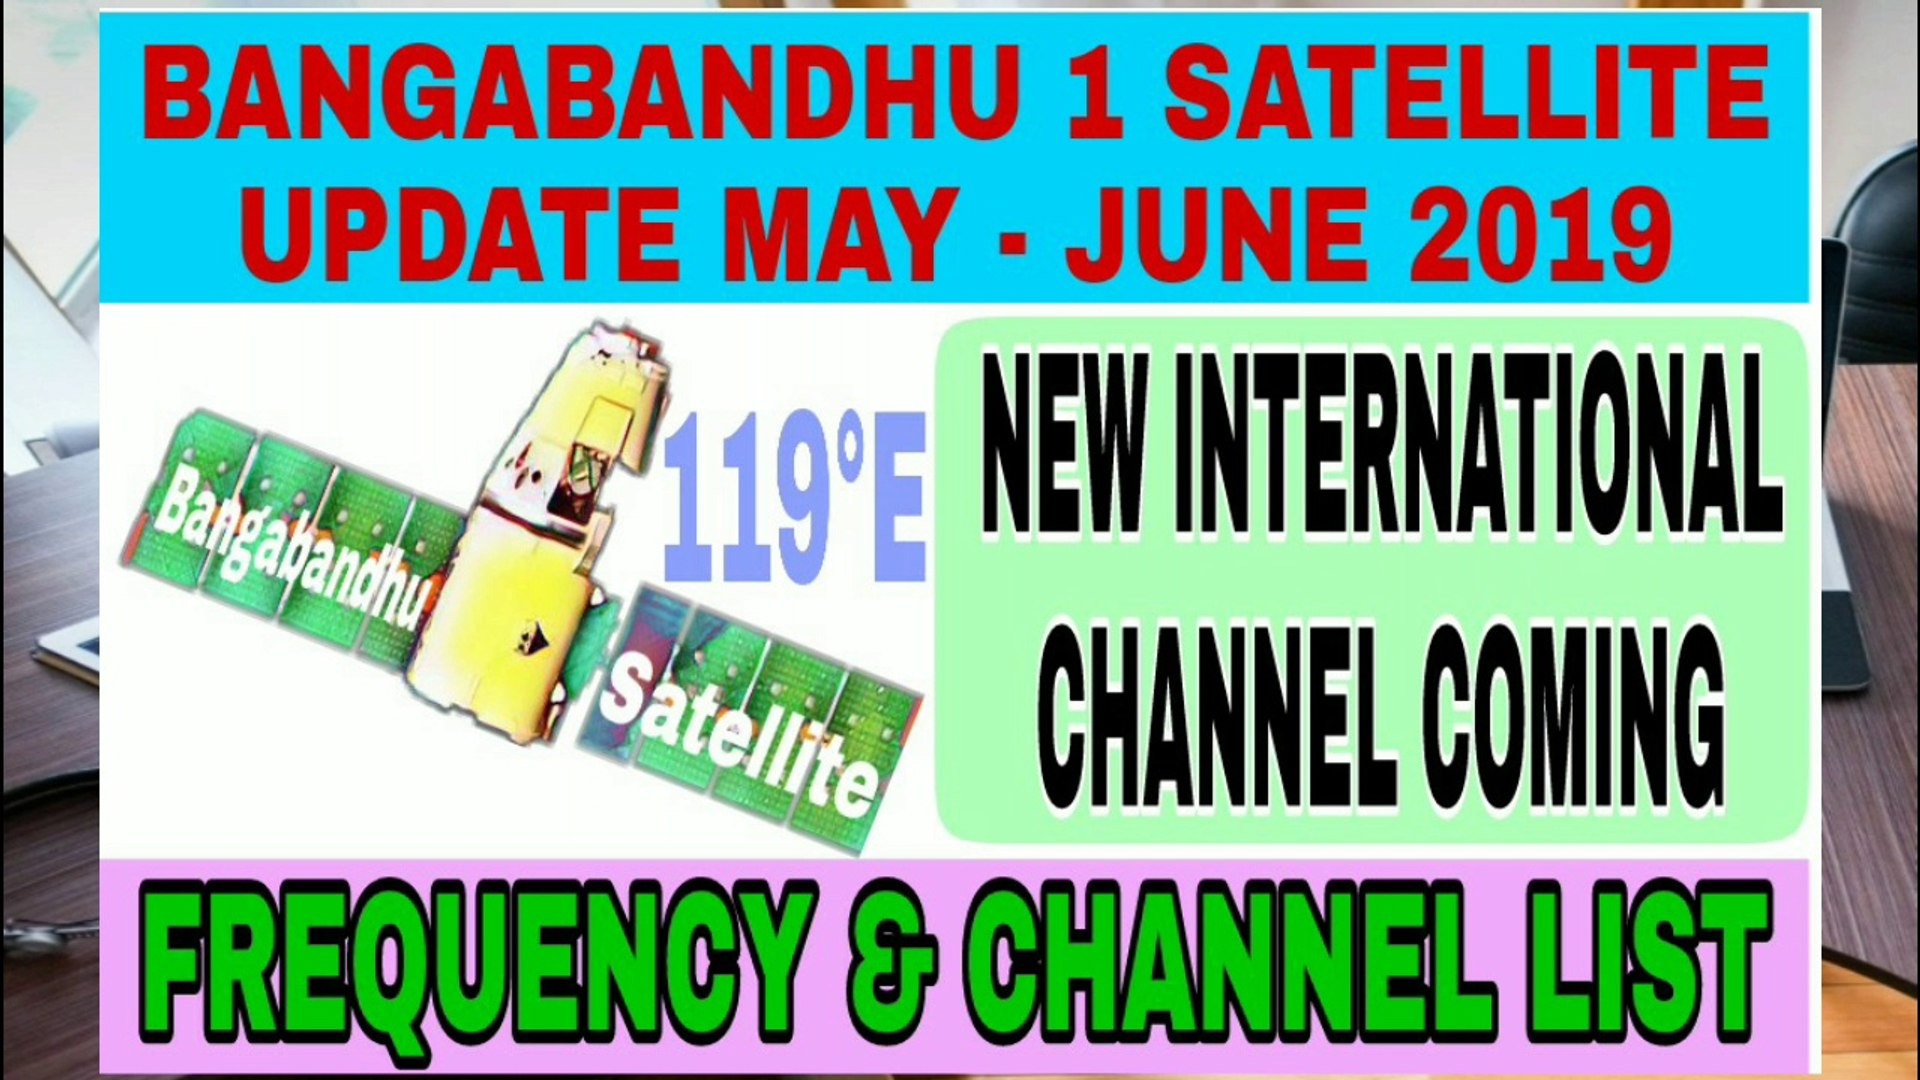 Bangabandhu Satellite New Frequency And Channel List